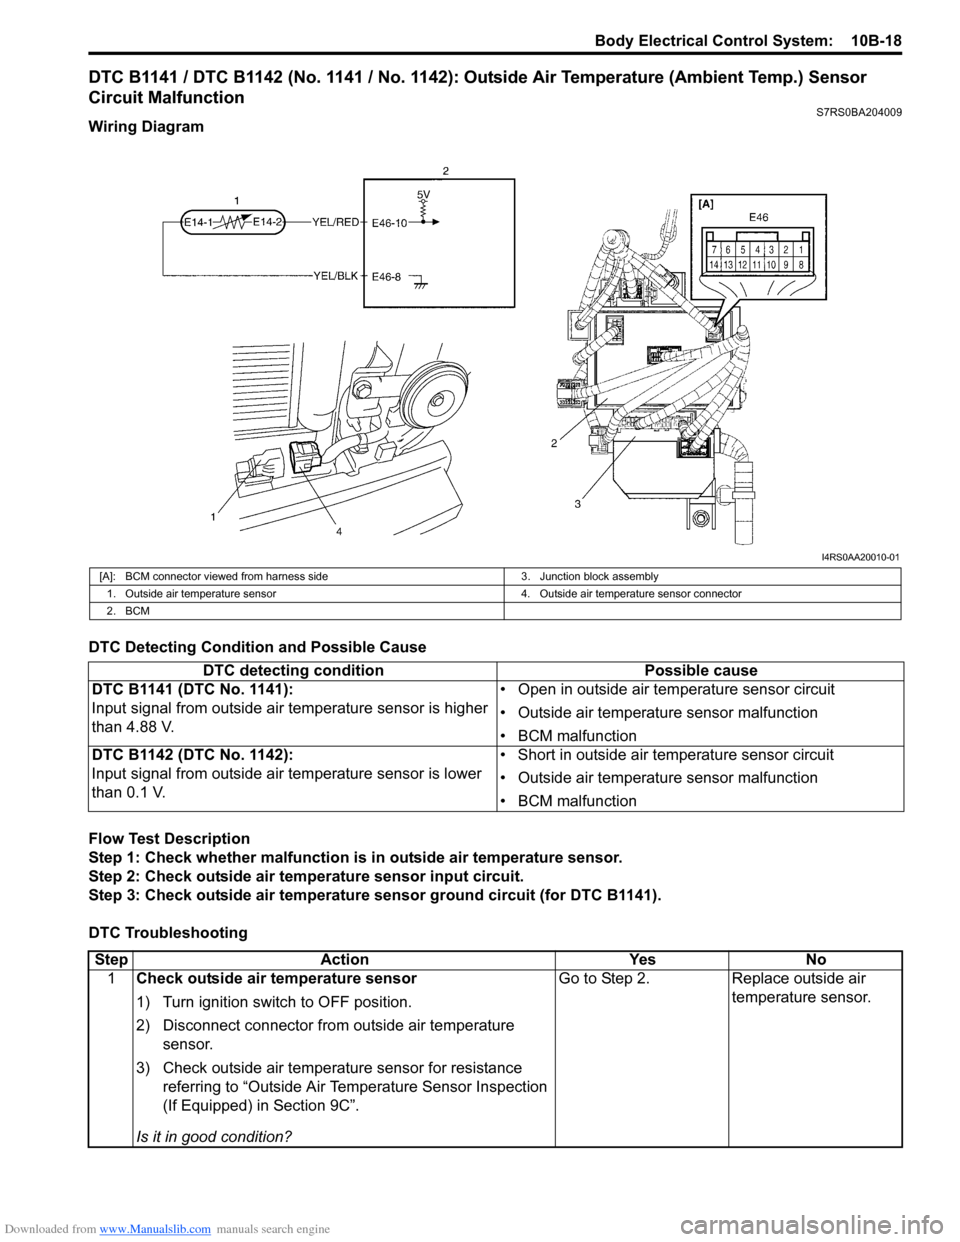 Suzuki Swift 2006 Wiring Diagram Electrical Diagrams Ozark 250 2 G Service Workshop Manual